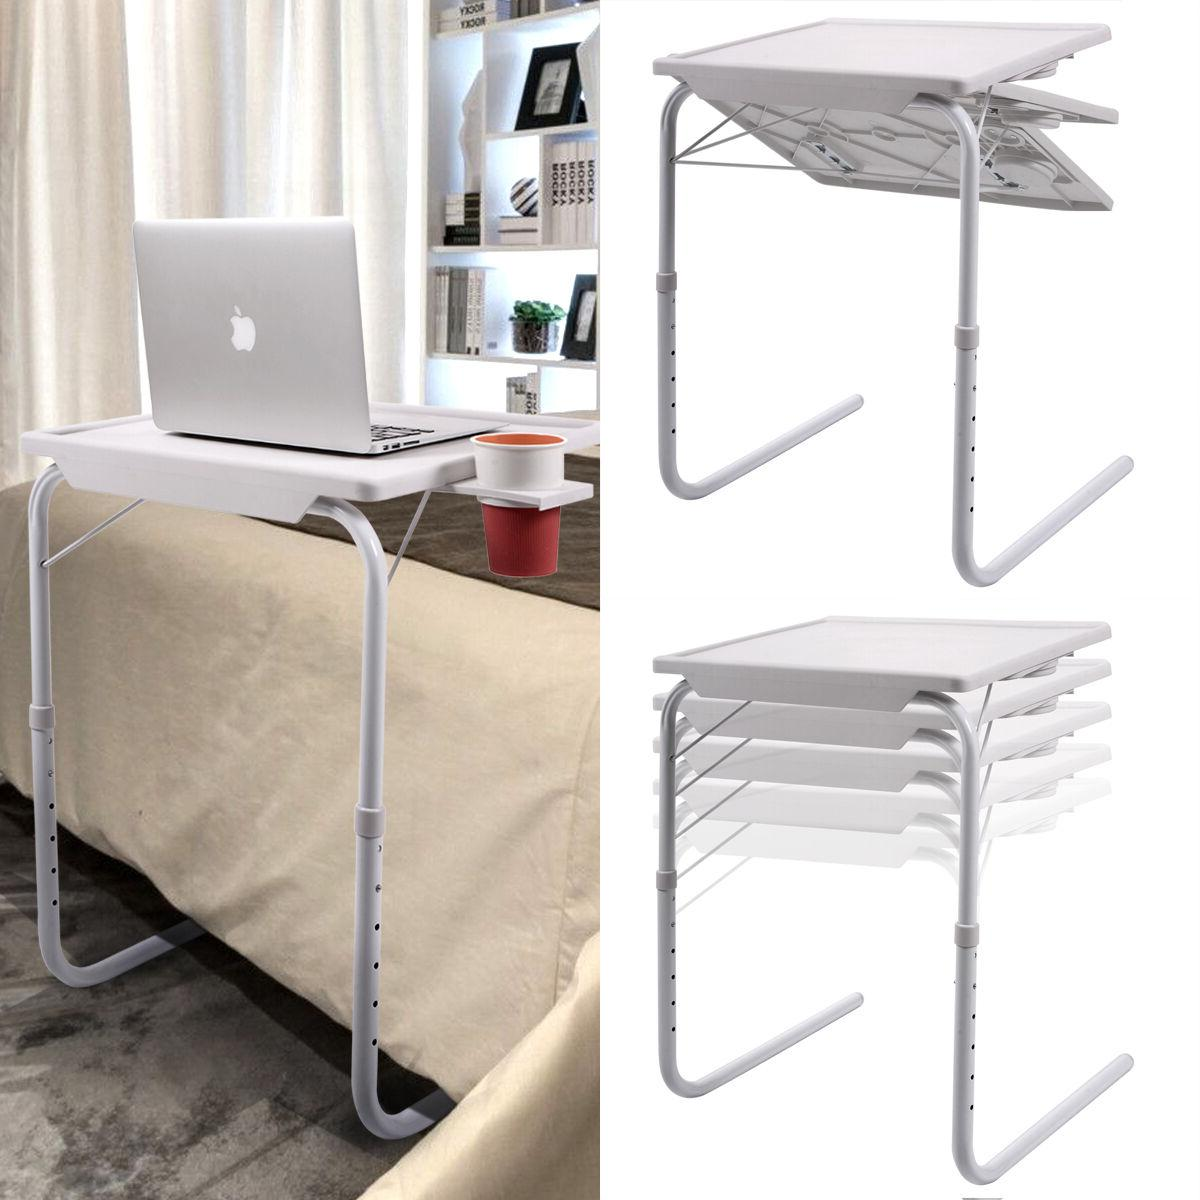 2 Table Adjustable Foldable W/Cup Holder